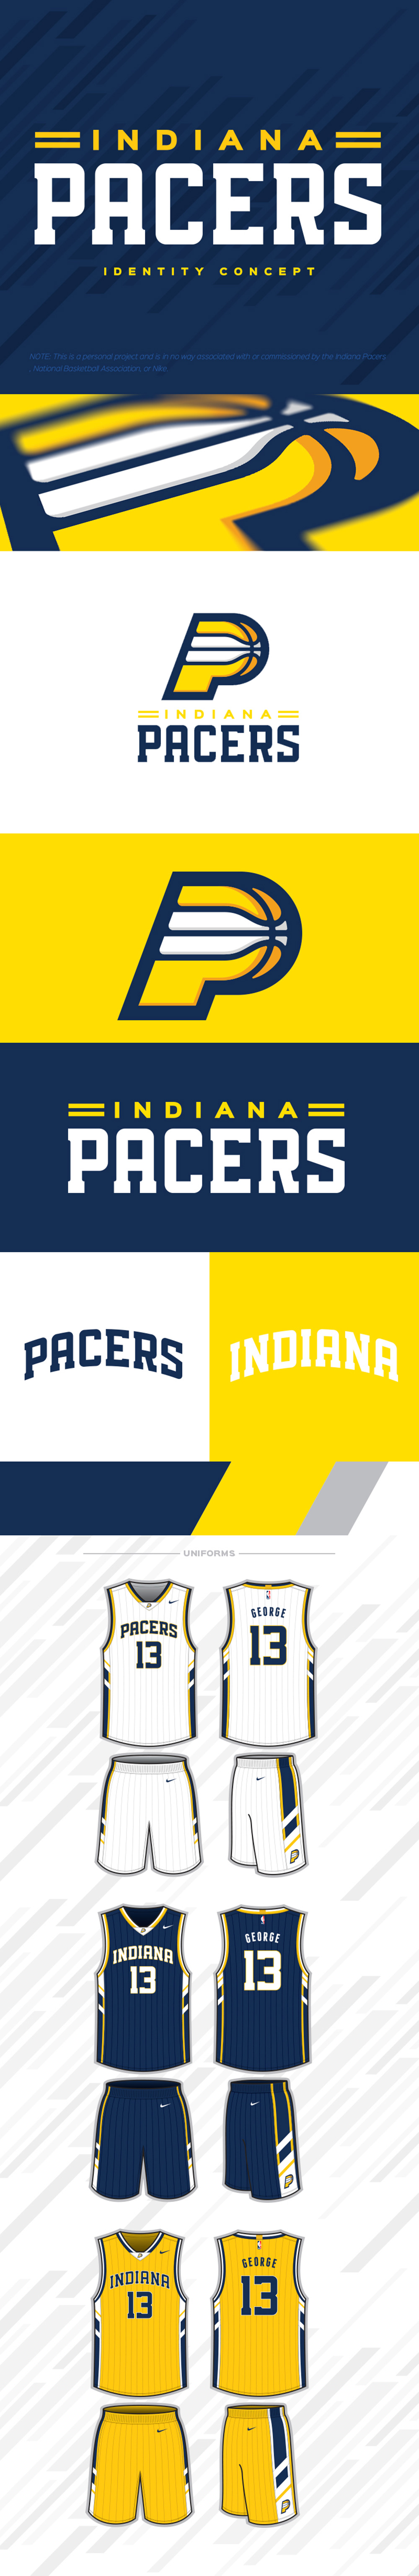 Basketball Team Logo: Indiana Pacers Identity Concept by Justin Wilkinson